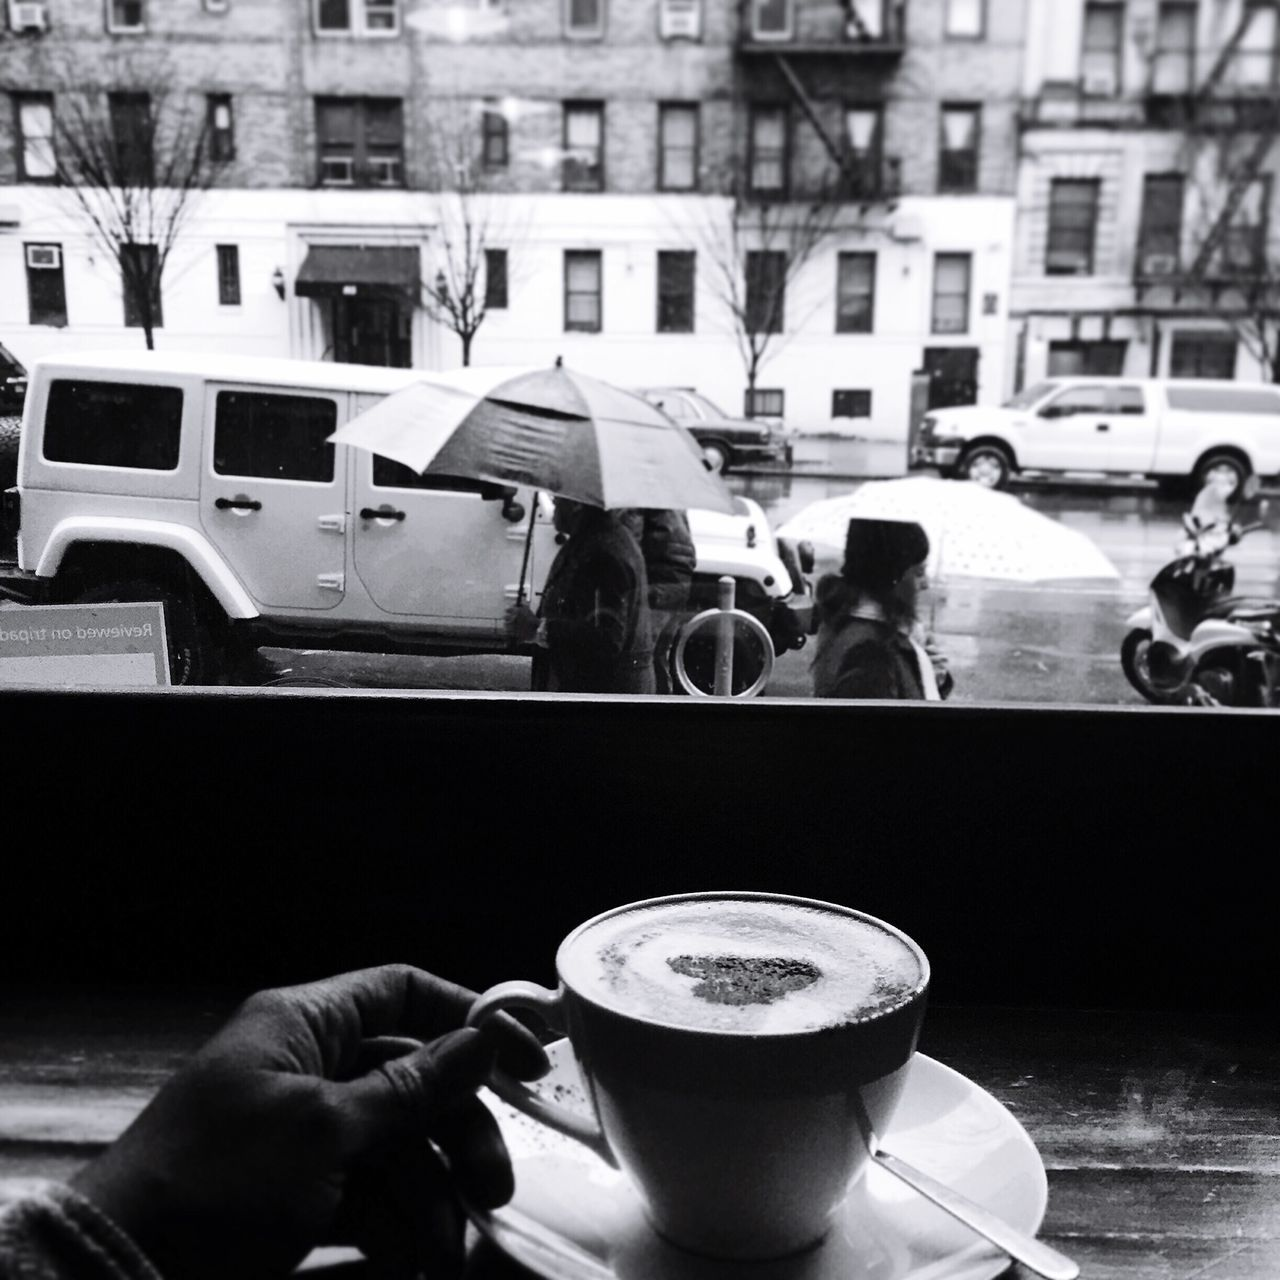 Hand Holding Cappuccino Against Vehicle On Road